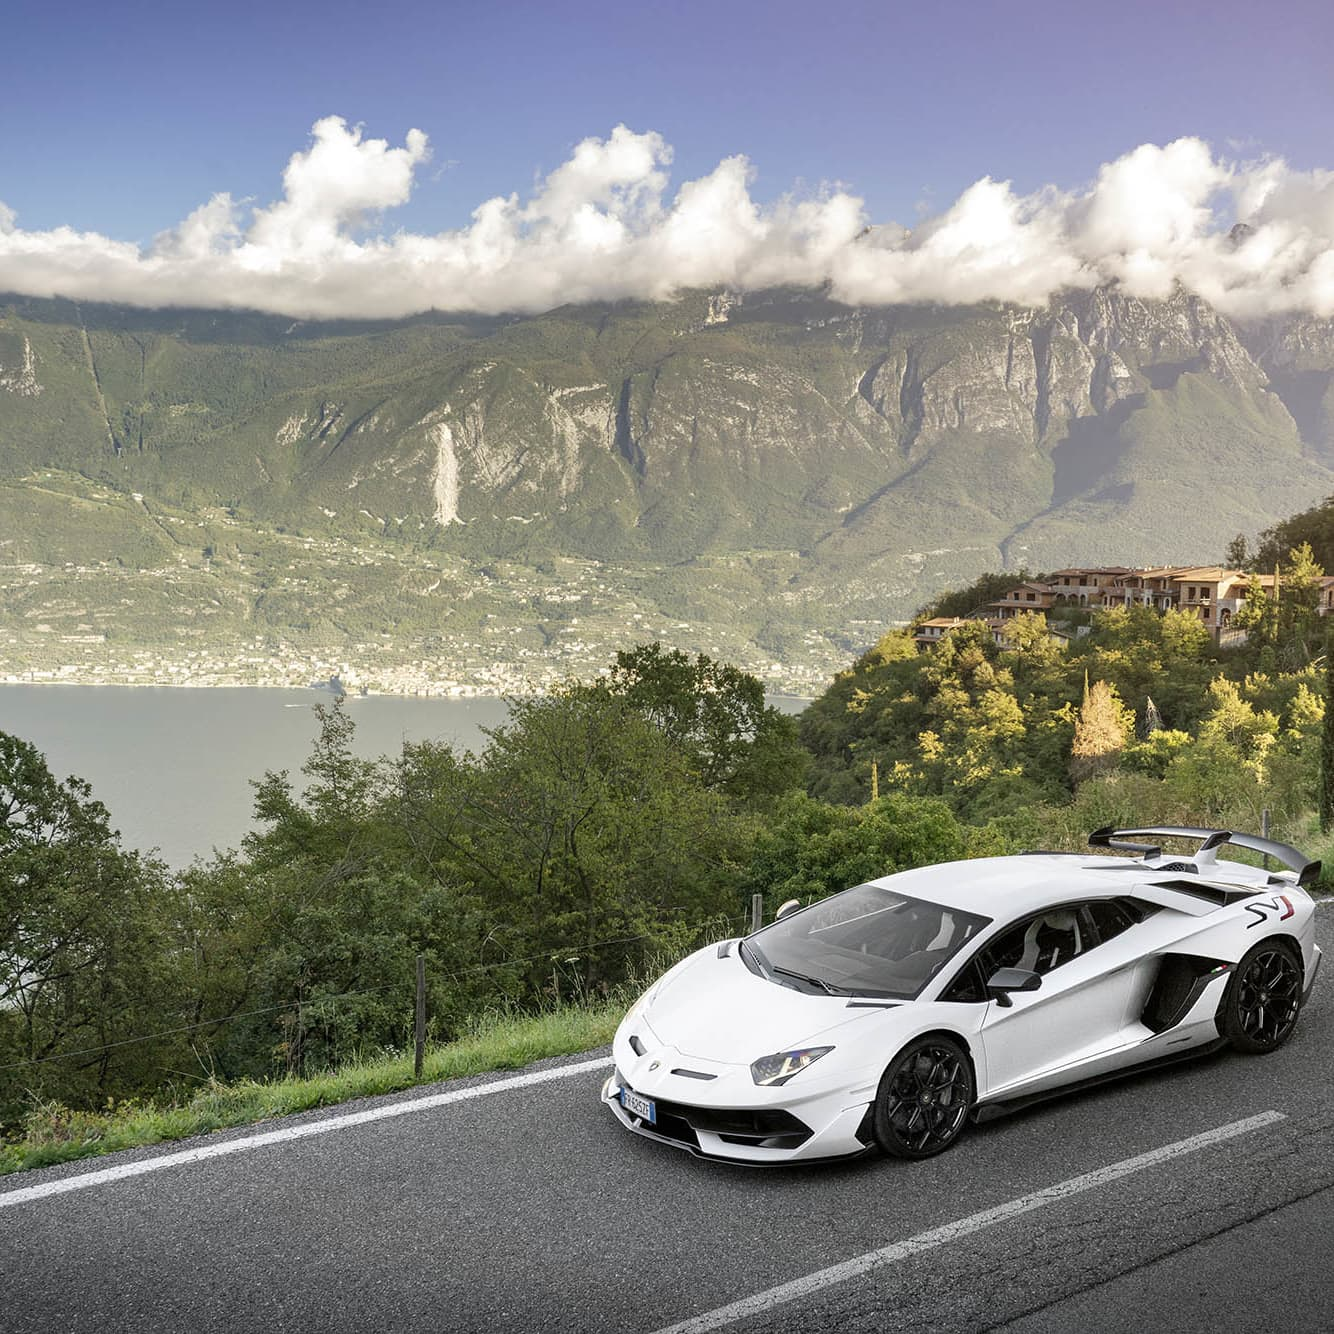 Lamborghini Aventador SVJ, without question the toughest bull from Sant'Agata Bolognese! In the background Garda Lake.